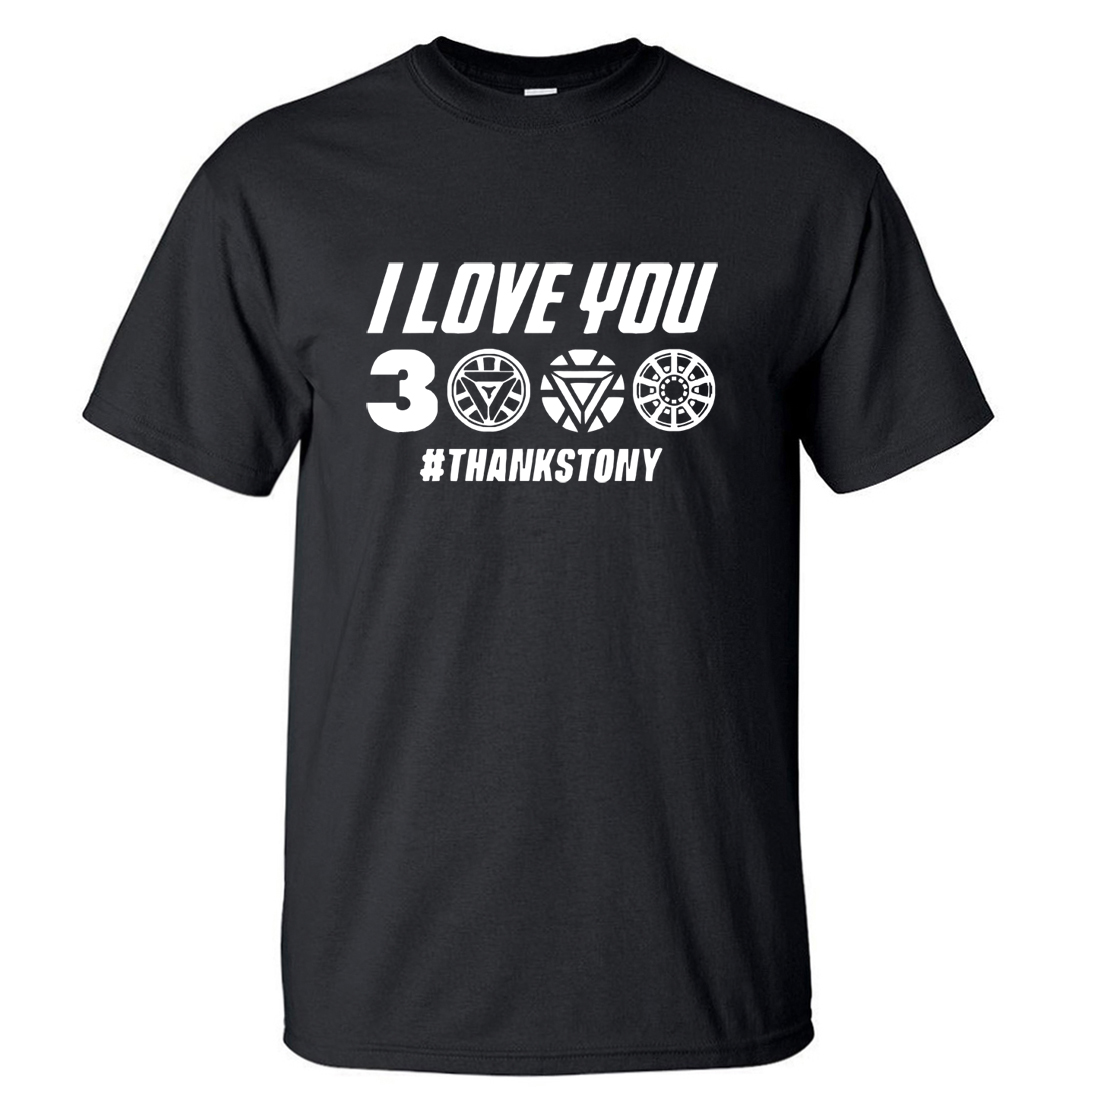 I Love You 3000 Times   T     shirt   Men Superhero Iron Man Tony Stark The Avengers Summer   T     Shirts   Cotton Short Sleeve Black Tshirt